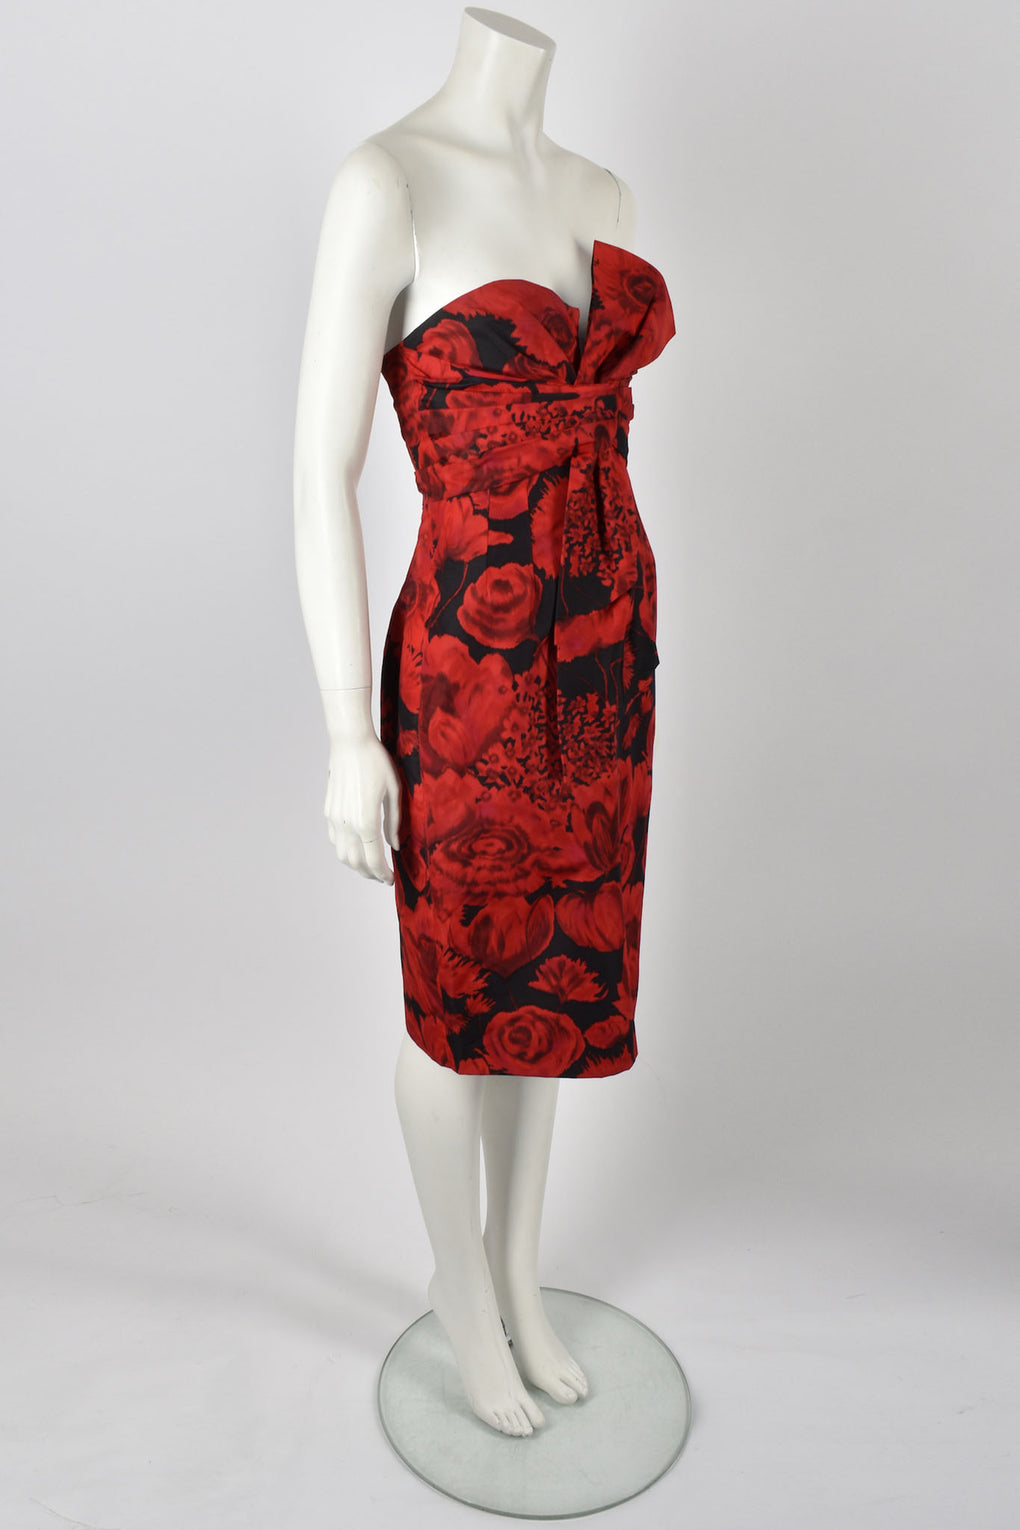 Christian Dior red rose cocktail dress